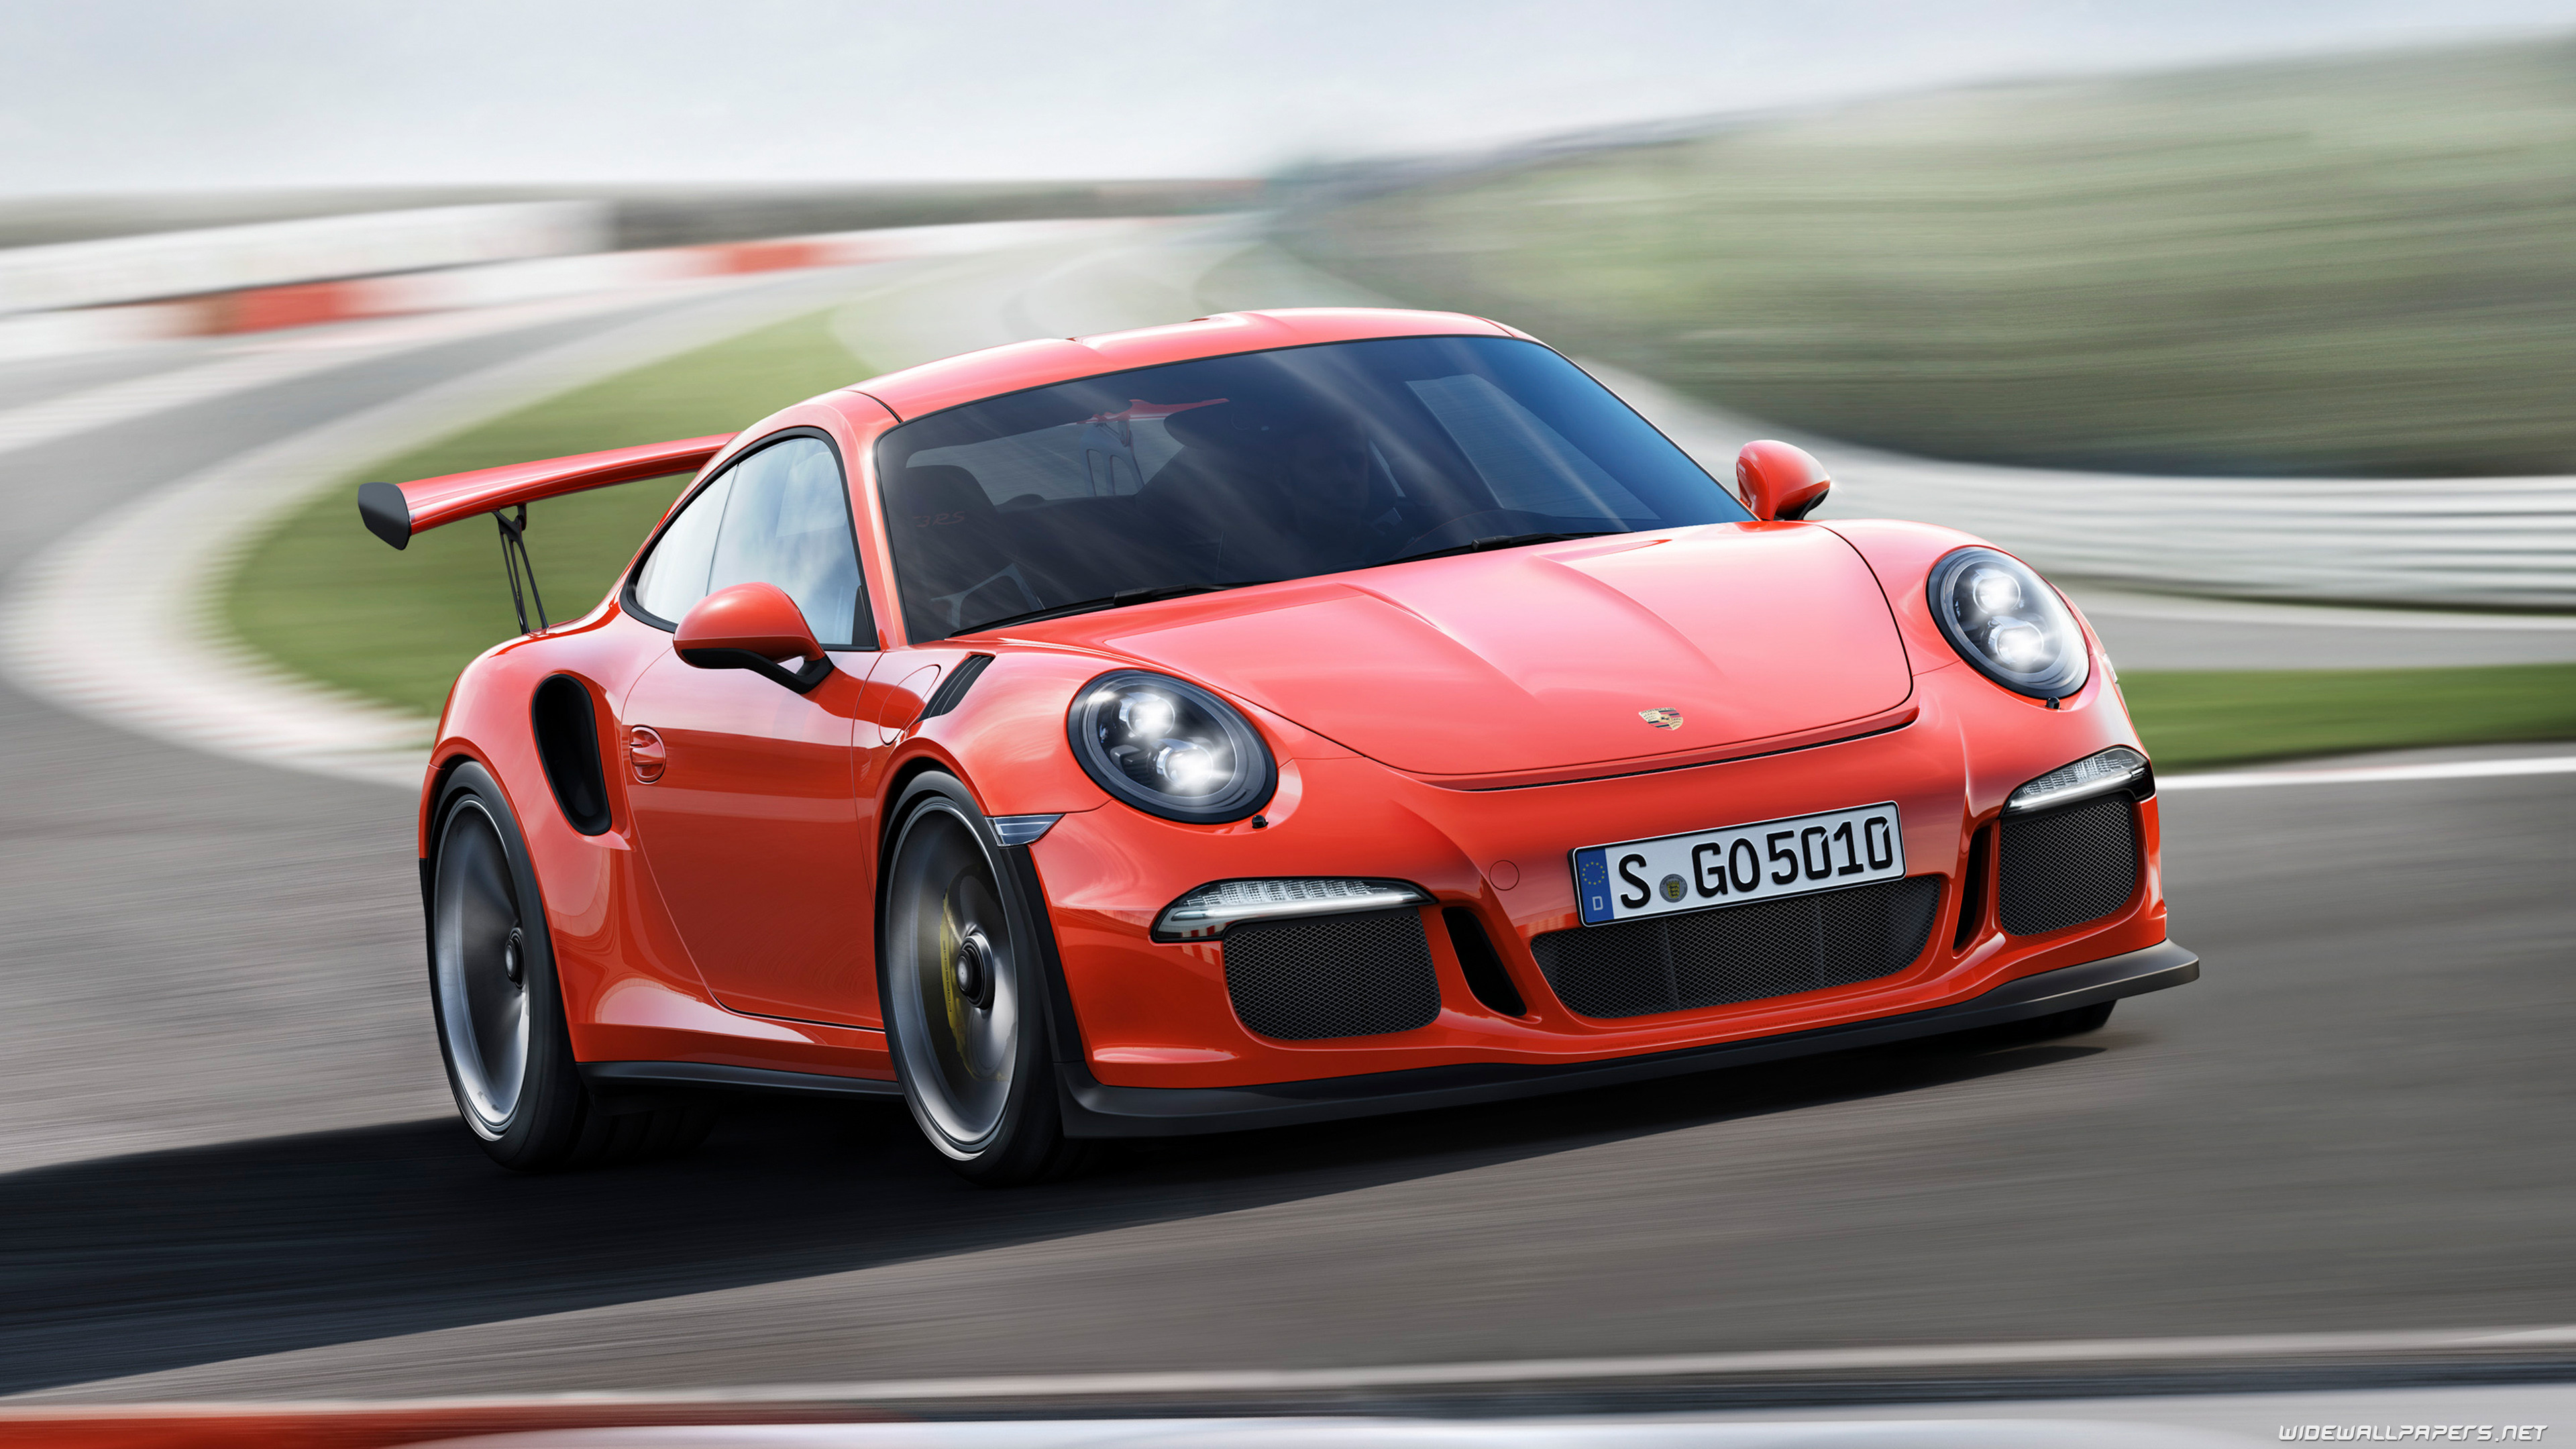 3840x2160 Porsche 911 GT3 RS car wallpapers ...